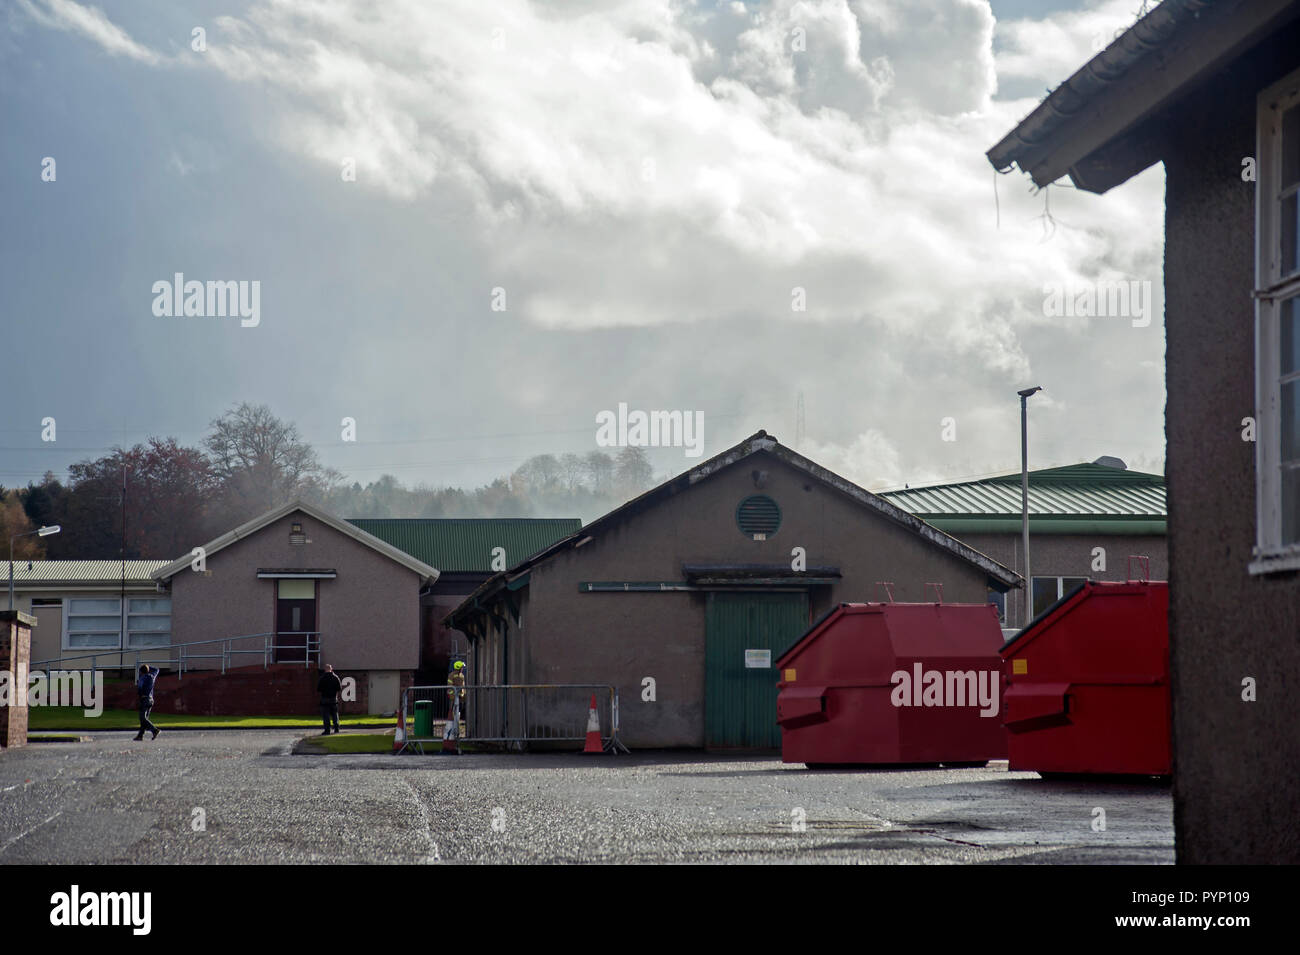 Brechin, Angus, Scotland, UK. 29th October, 2018. At around 11.15 this morning (29th October 2018) a fire broke out in the roof of the X-ray Dept. of Stracathro Hospital, Brechin, Angus, Scotland. The fire was thought to have been started on a flat roof under repair before extending into the main roof. Patients and staff were evactuated from the Surgical Unit which houses the X-ray Dept. and transferred to a separate Learning and Education Centre on site. Credit: Photog1/Alamy Live News - Stock Image